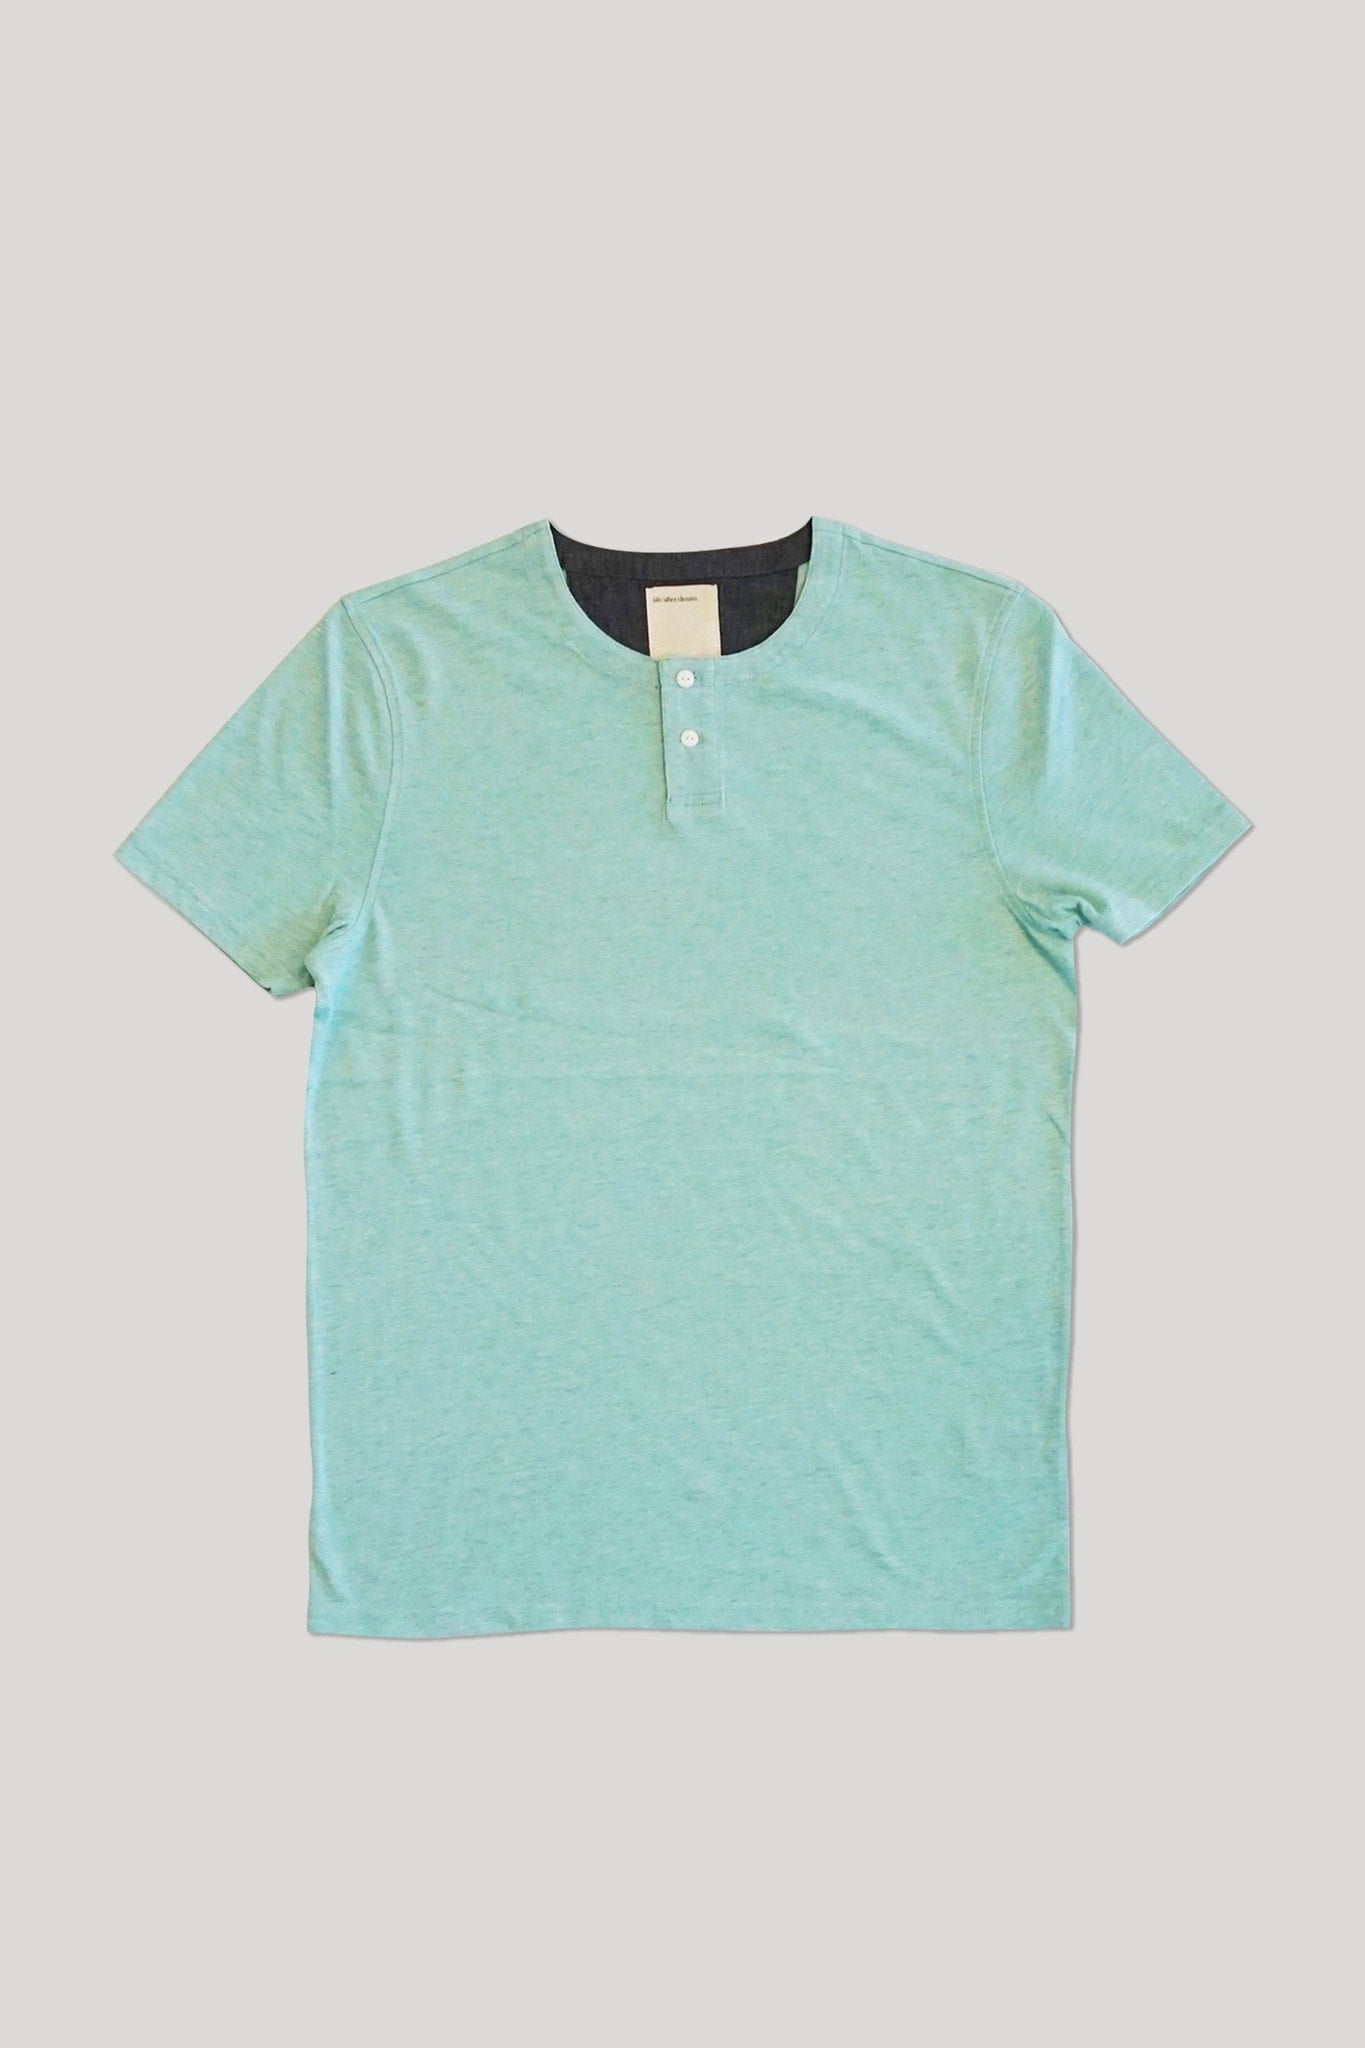 S/S Hachiko Henley - Heather Mint